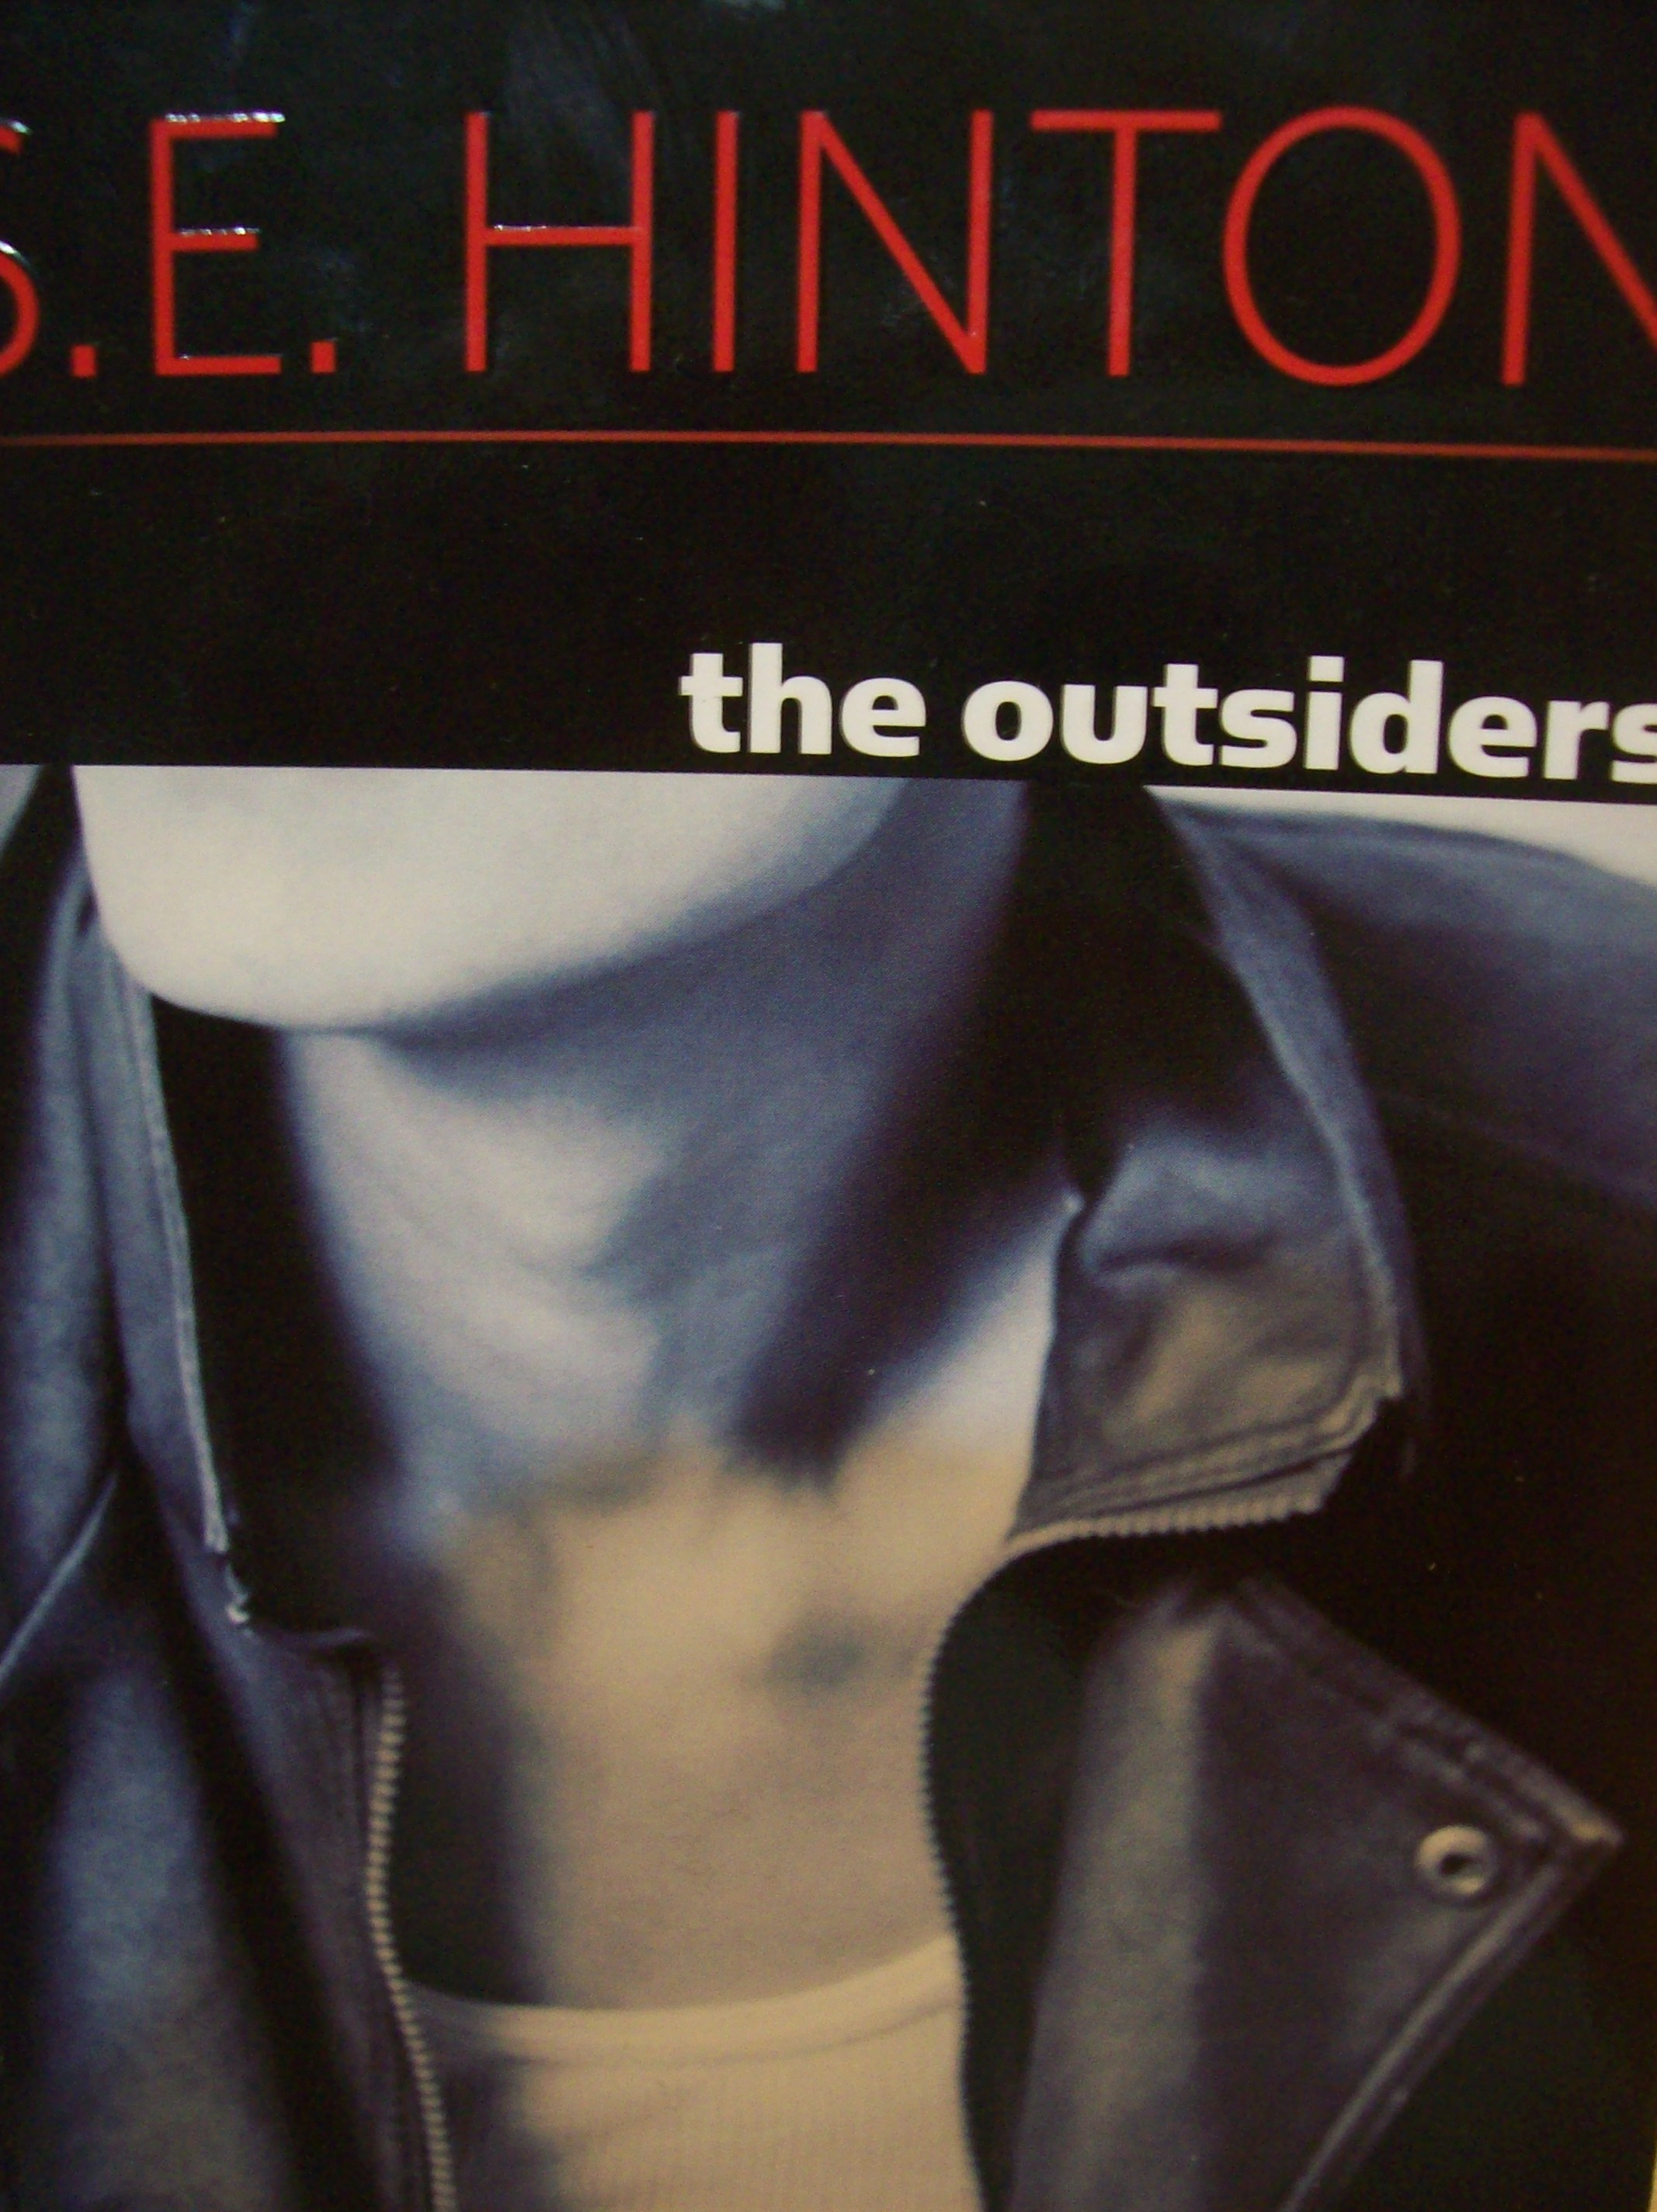 essays on the outsiders by se hinton S e hinton recalls that when she published her début novel, the outsiders, in 1967, there was no young-adult market her book, written by a teen-ager about teen-agers in tulsa.